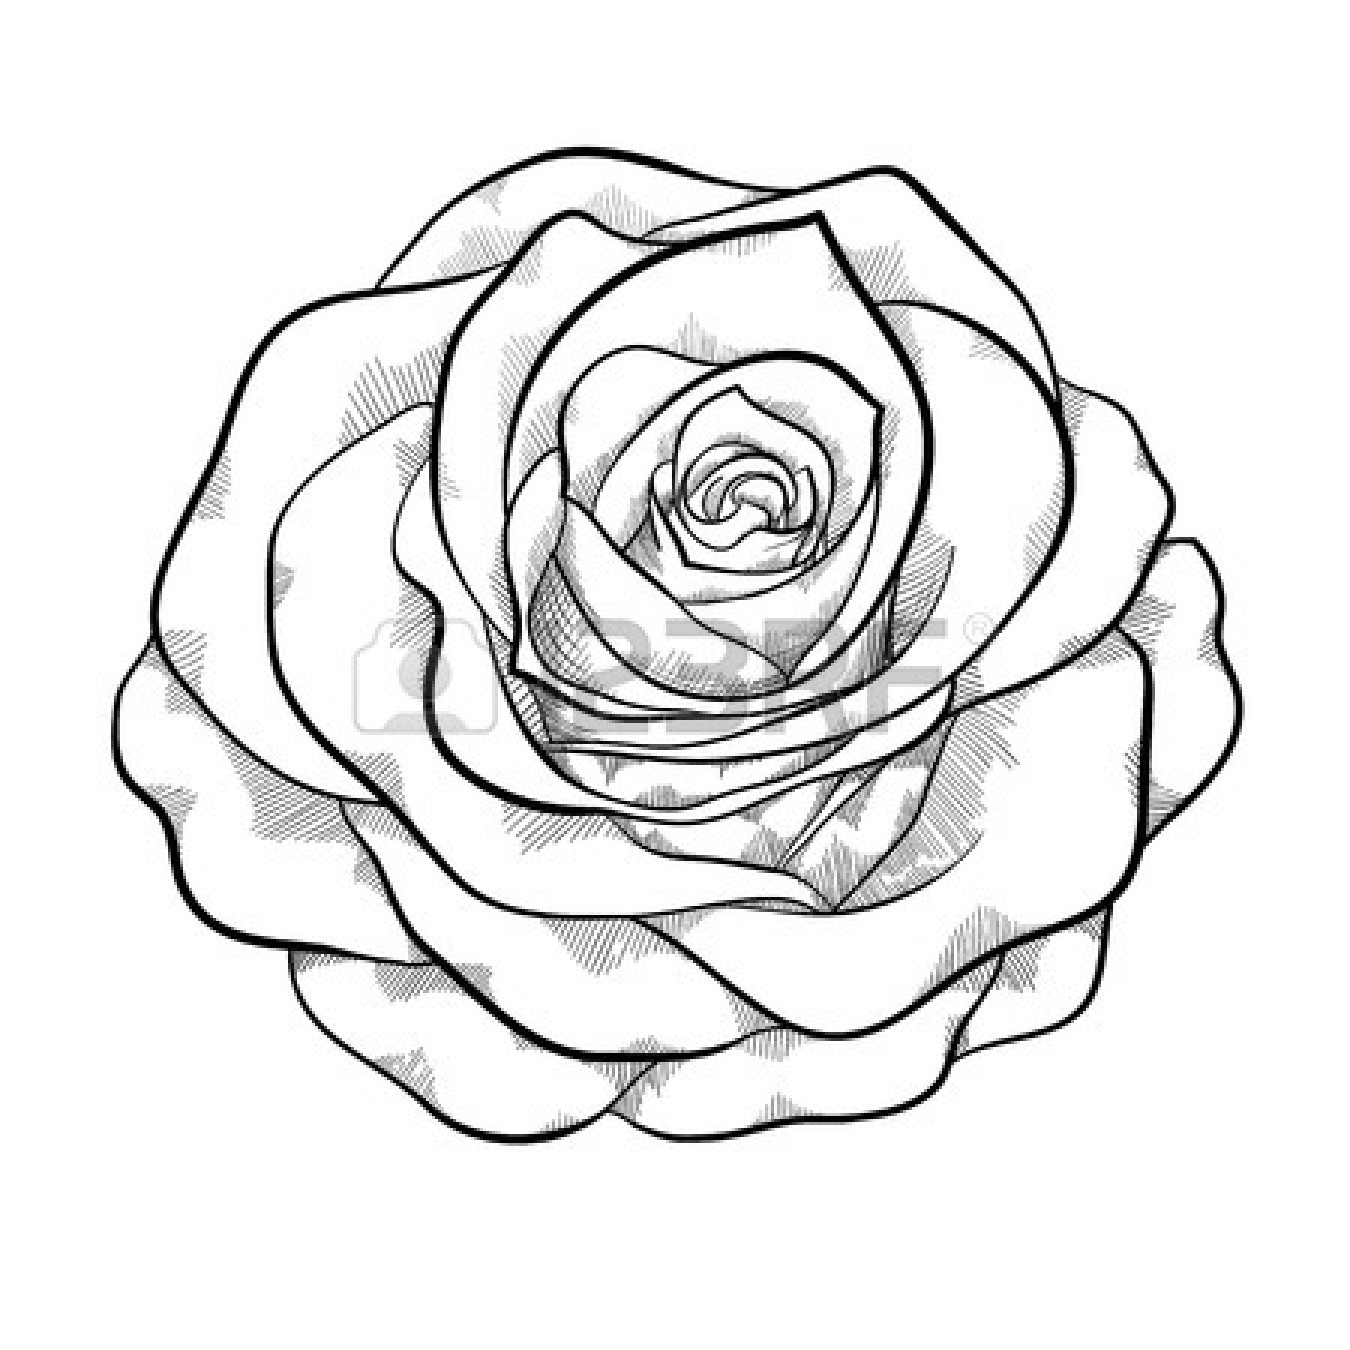 Drawn rose black and white Roses Rose Roses Roses